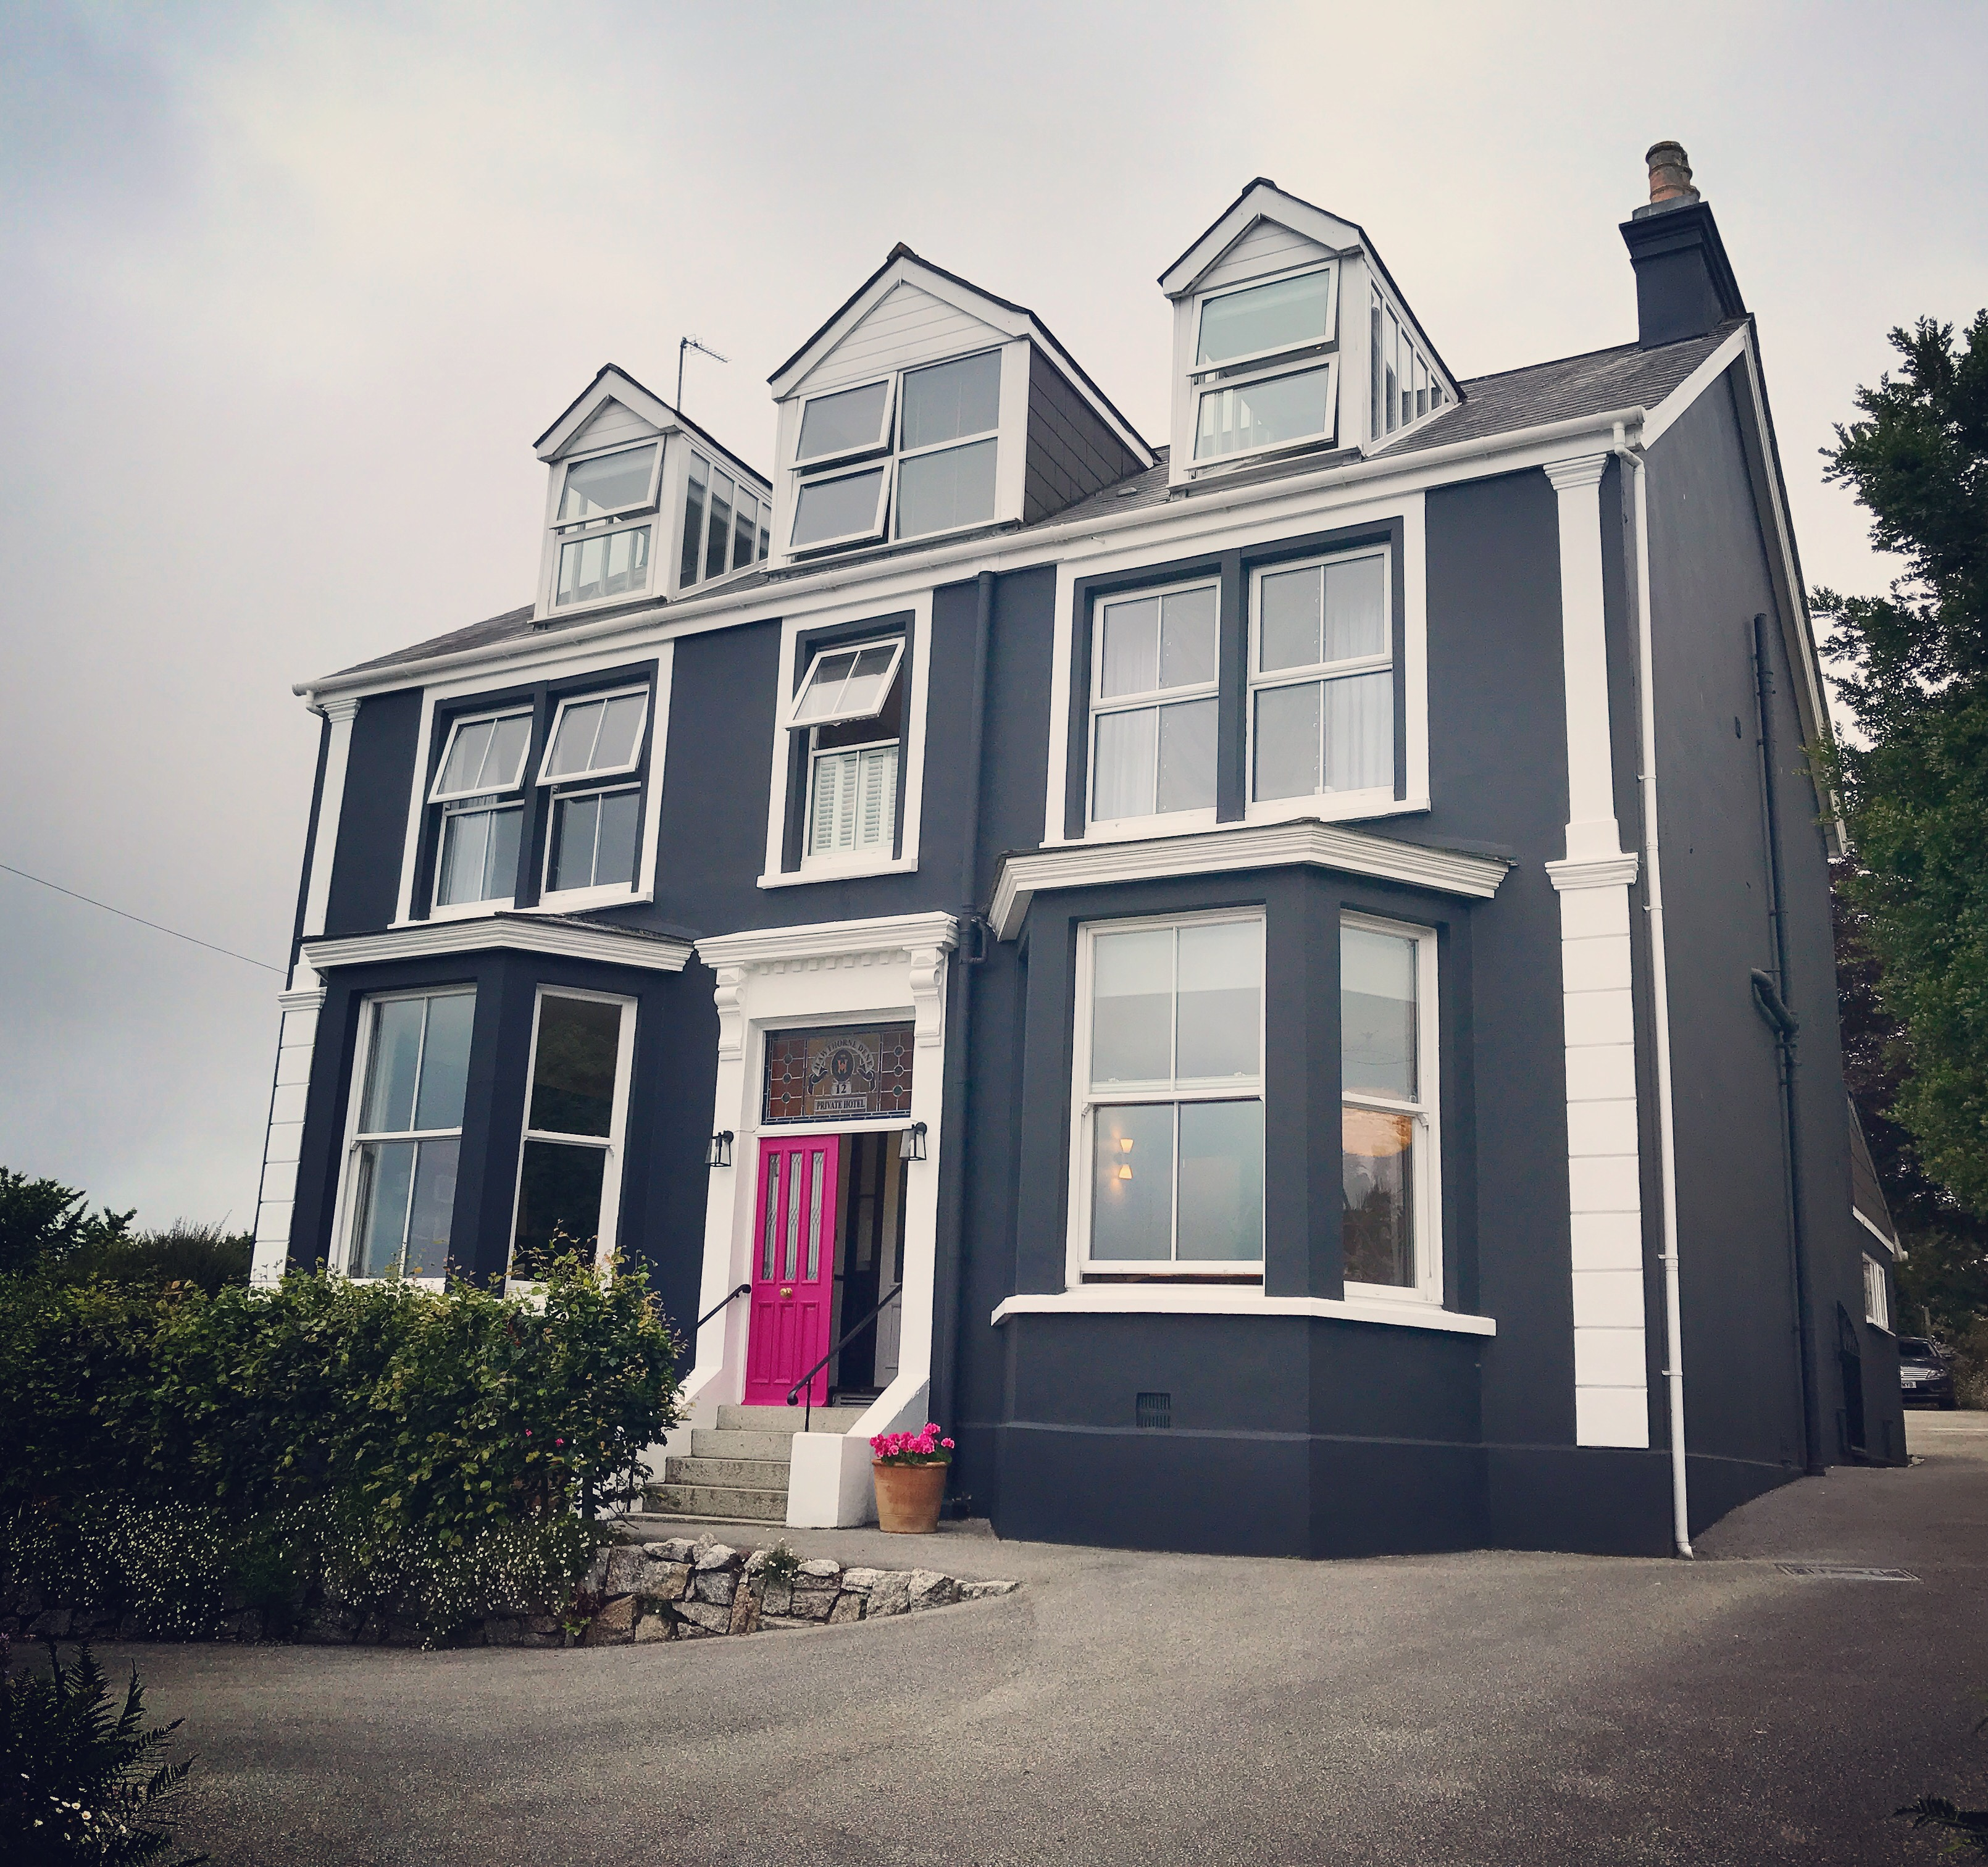 The Sandy Duck in Falmouth. Luxury Cornish B'n'B. Stylish Edwardian townhouse given a Danish makeover. Frankie and Lamb visit during their family holiday.